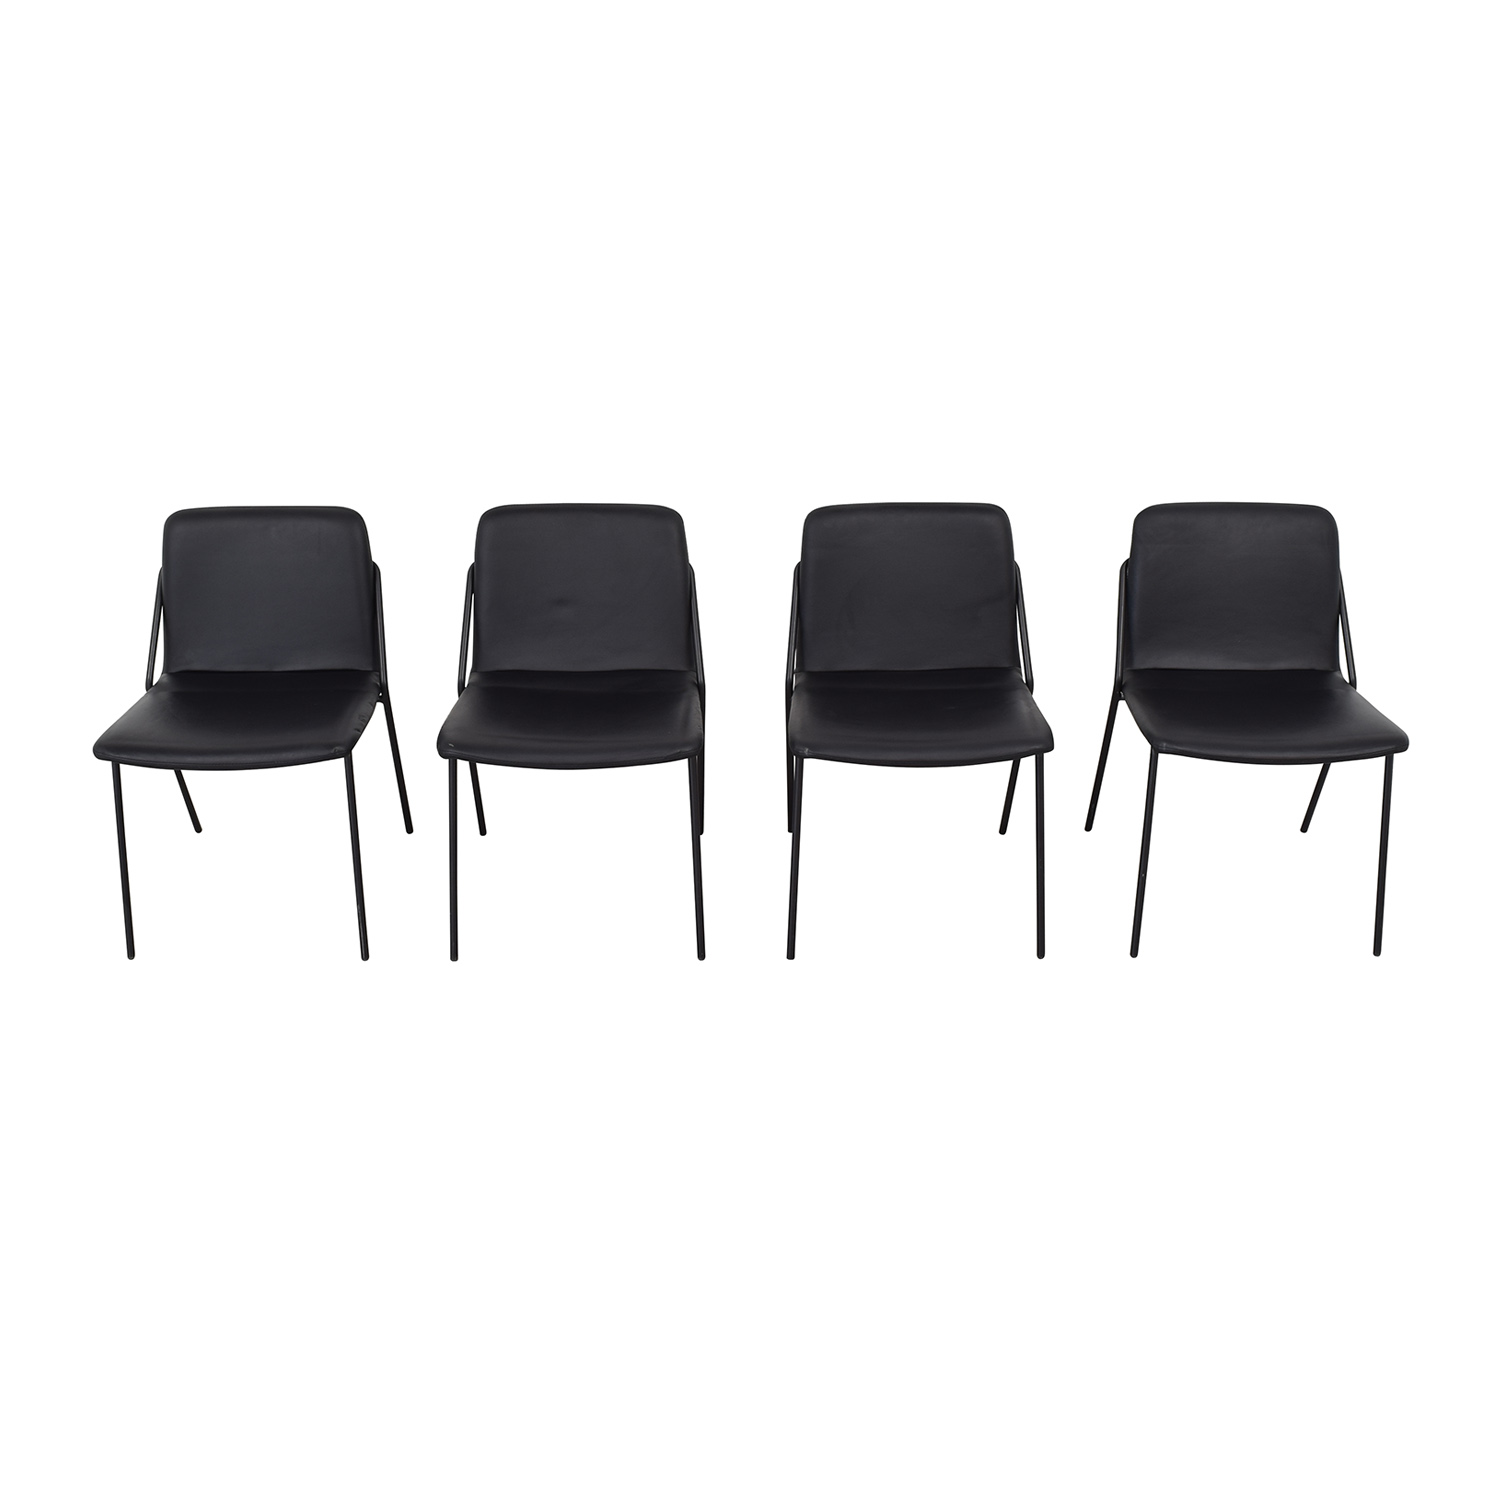 m.a.d. m.a.d. Black Sling Upholstered Chairs for sale